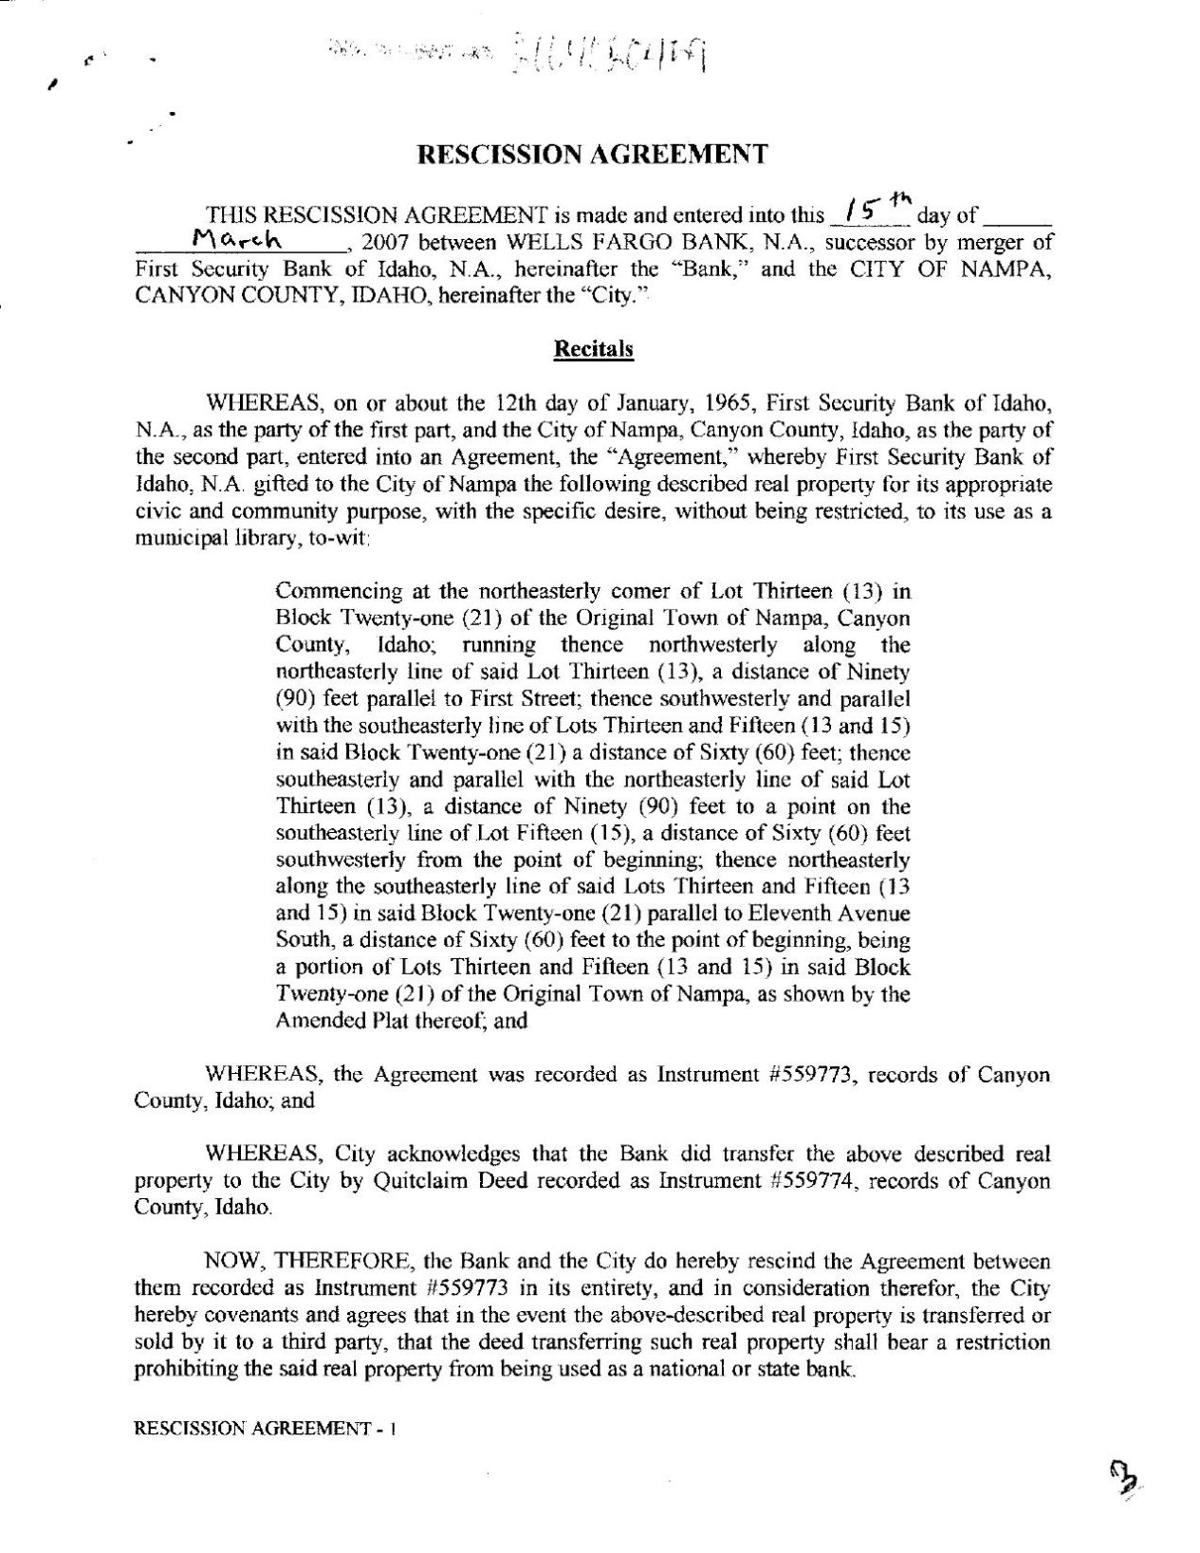 Old nampa library deed agreement idahopress download pdf old nampa library deed agreement platinumwayz